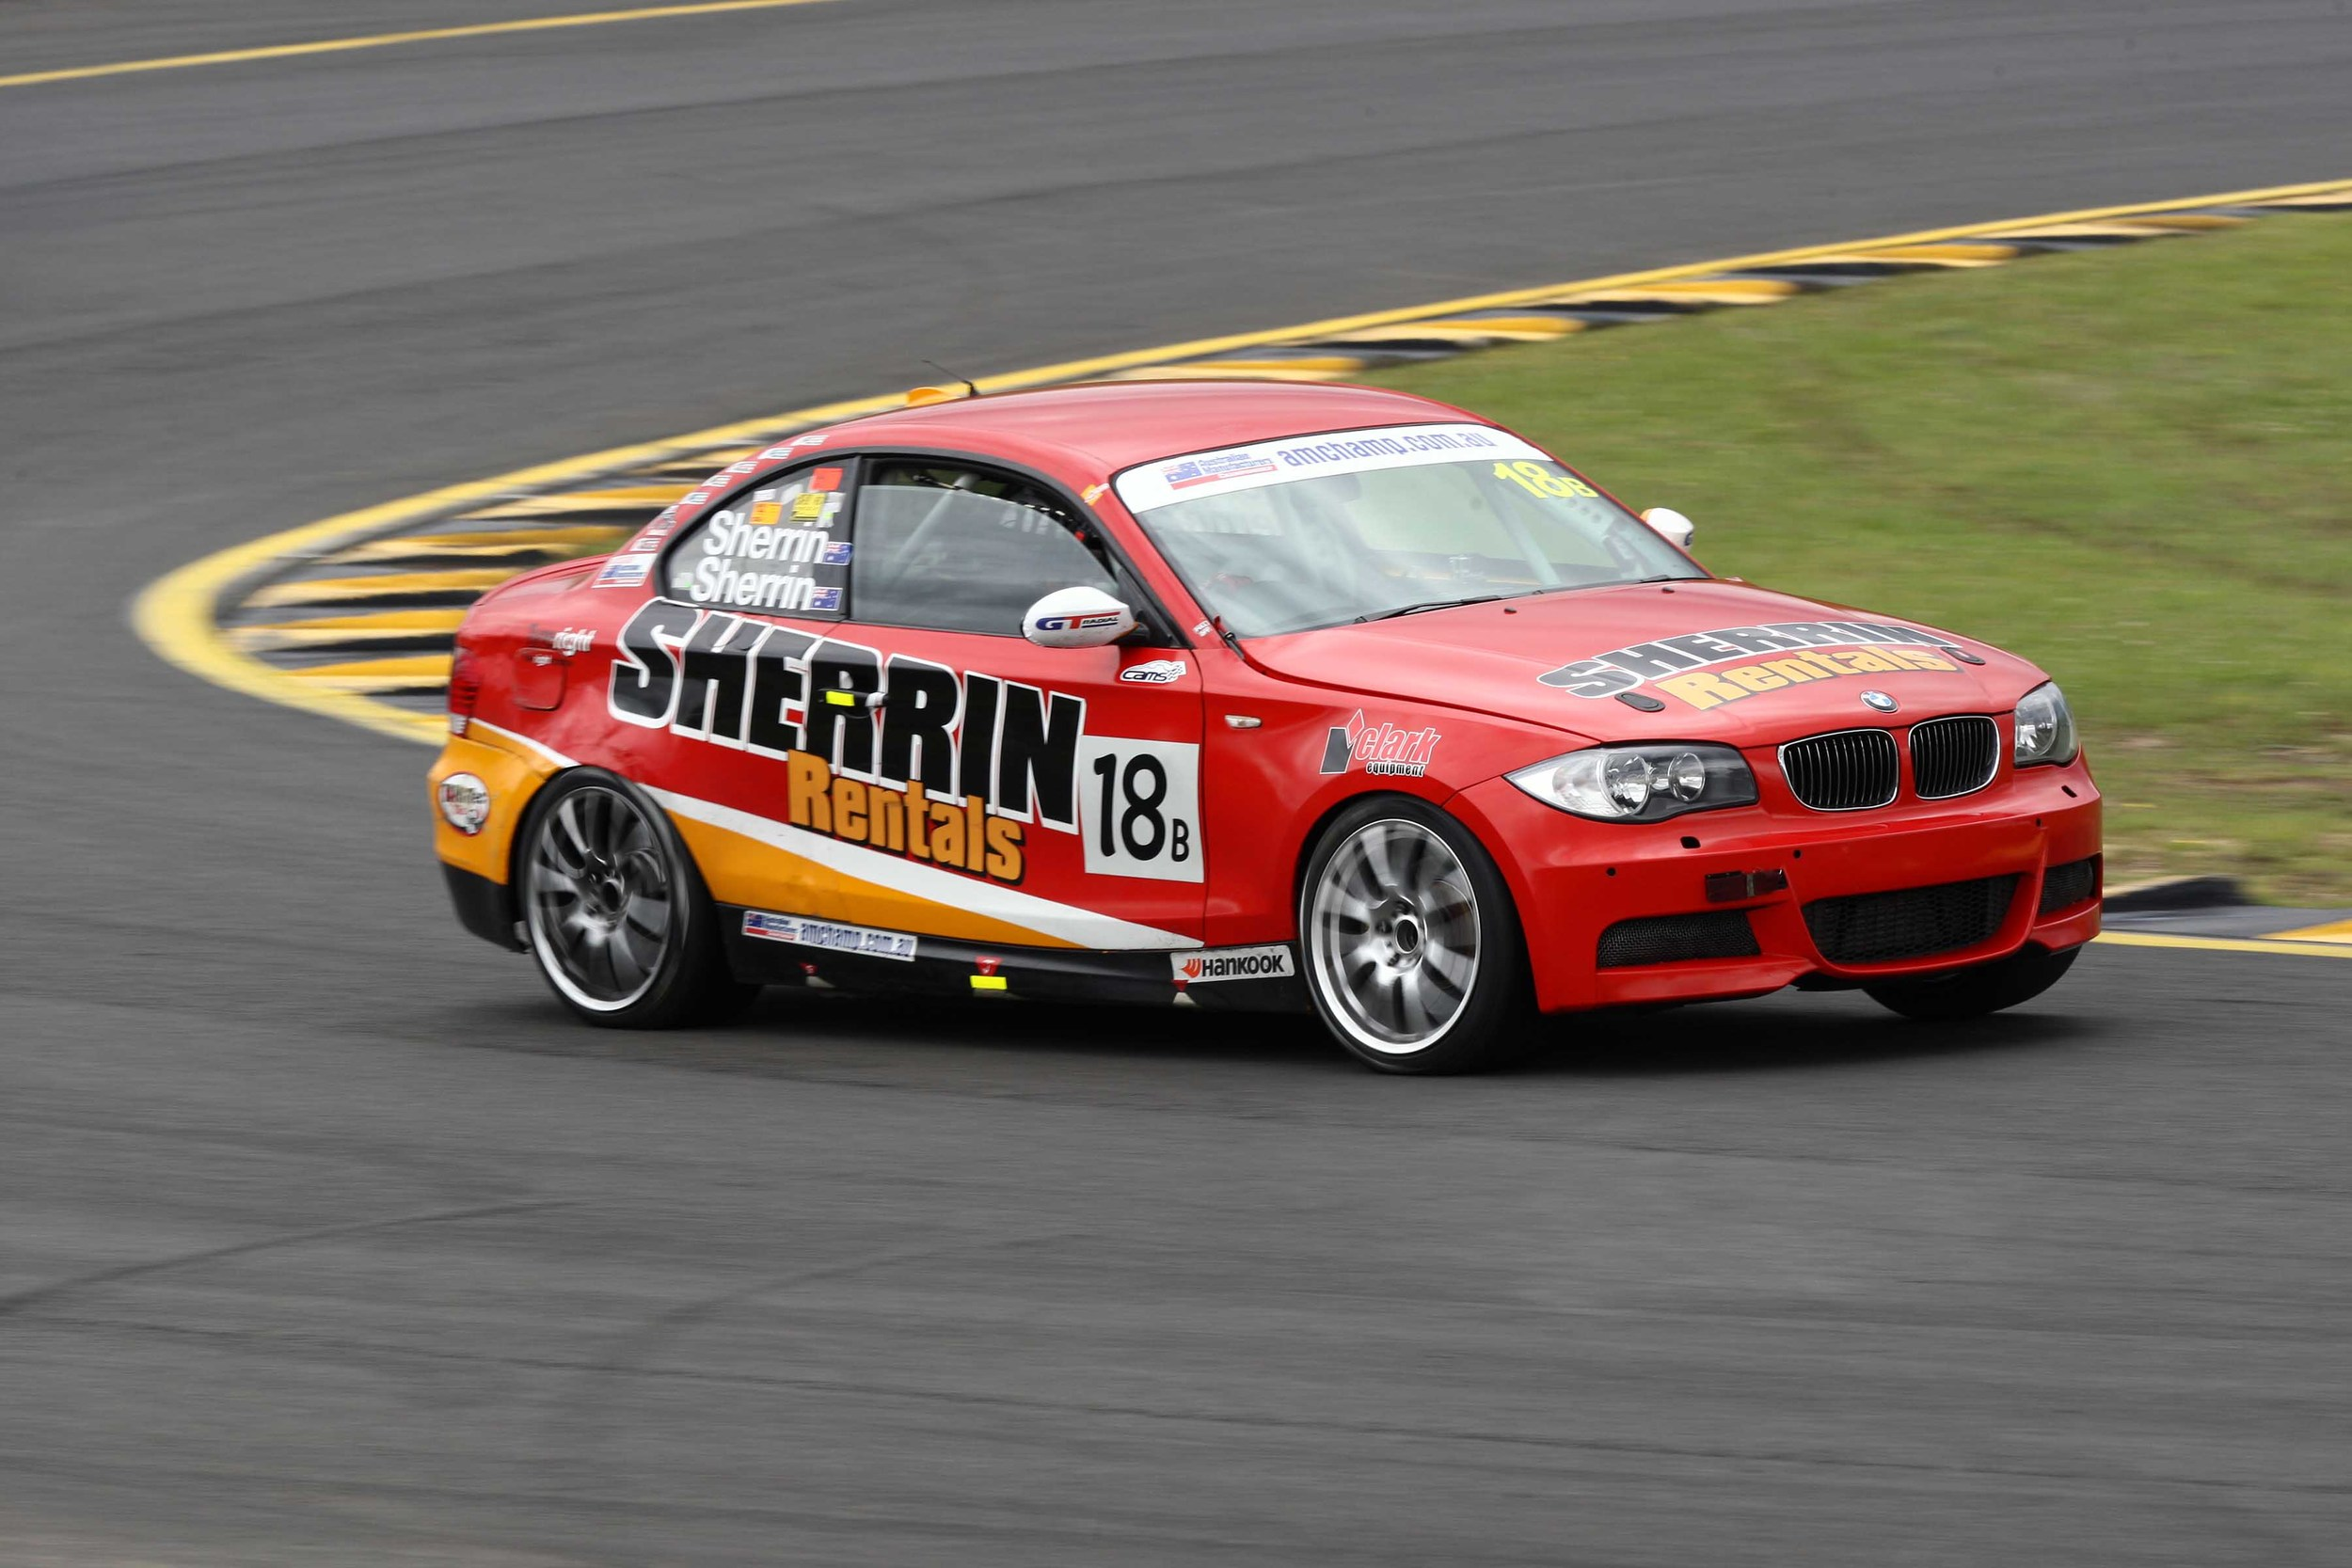 The Sherrin Rentals Racing team had a tough trip to the Australian 4 Hour, but the never give up attitude paid dividends in the end (image credit - James Smith)